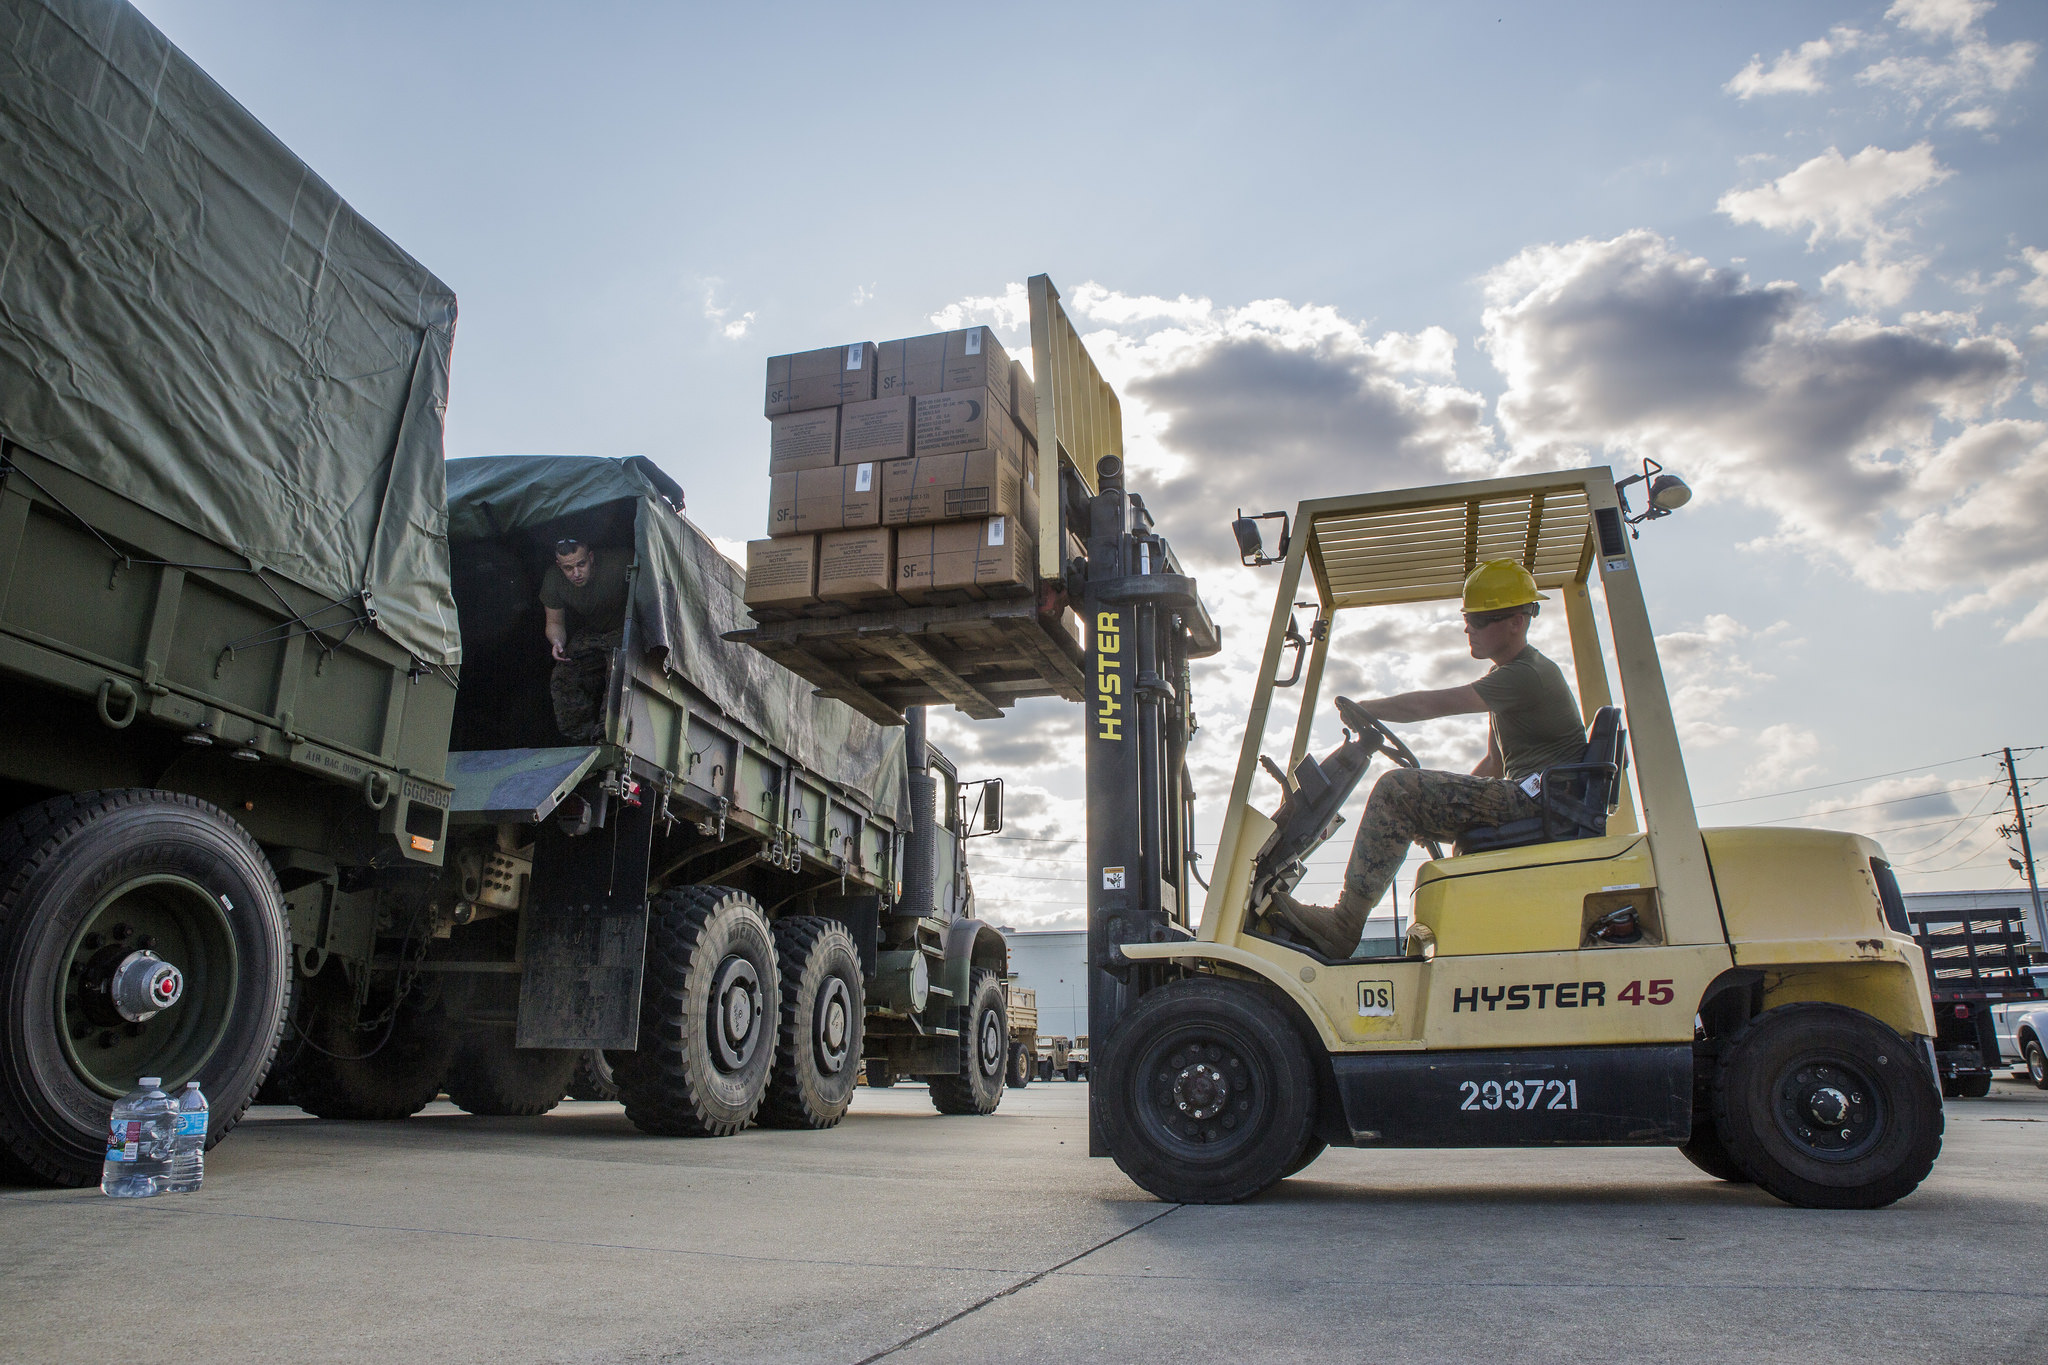 Marines from 3rd Force Reconnaissance Company, 4th Marine Division, Marine Forces Reserve, load a spare tire onto an MTVR 7-ton truck at the Alabama Army National Guard Fort Whiting Armory in Mobile, Ala., Sept. 9, 2017, in preparation of rescue missions following Hurricane Irma. (Lance Cpl. Niles Lee/Marine Corps)